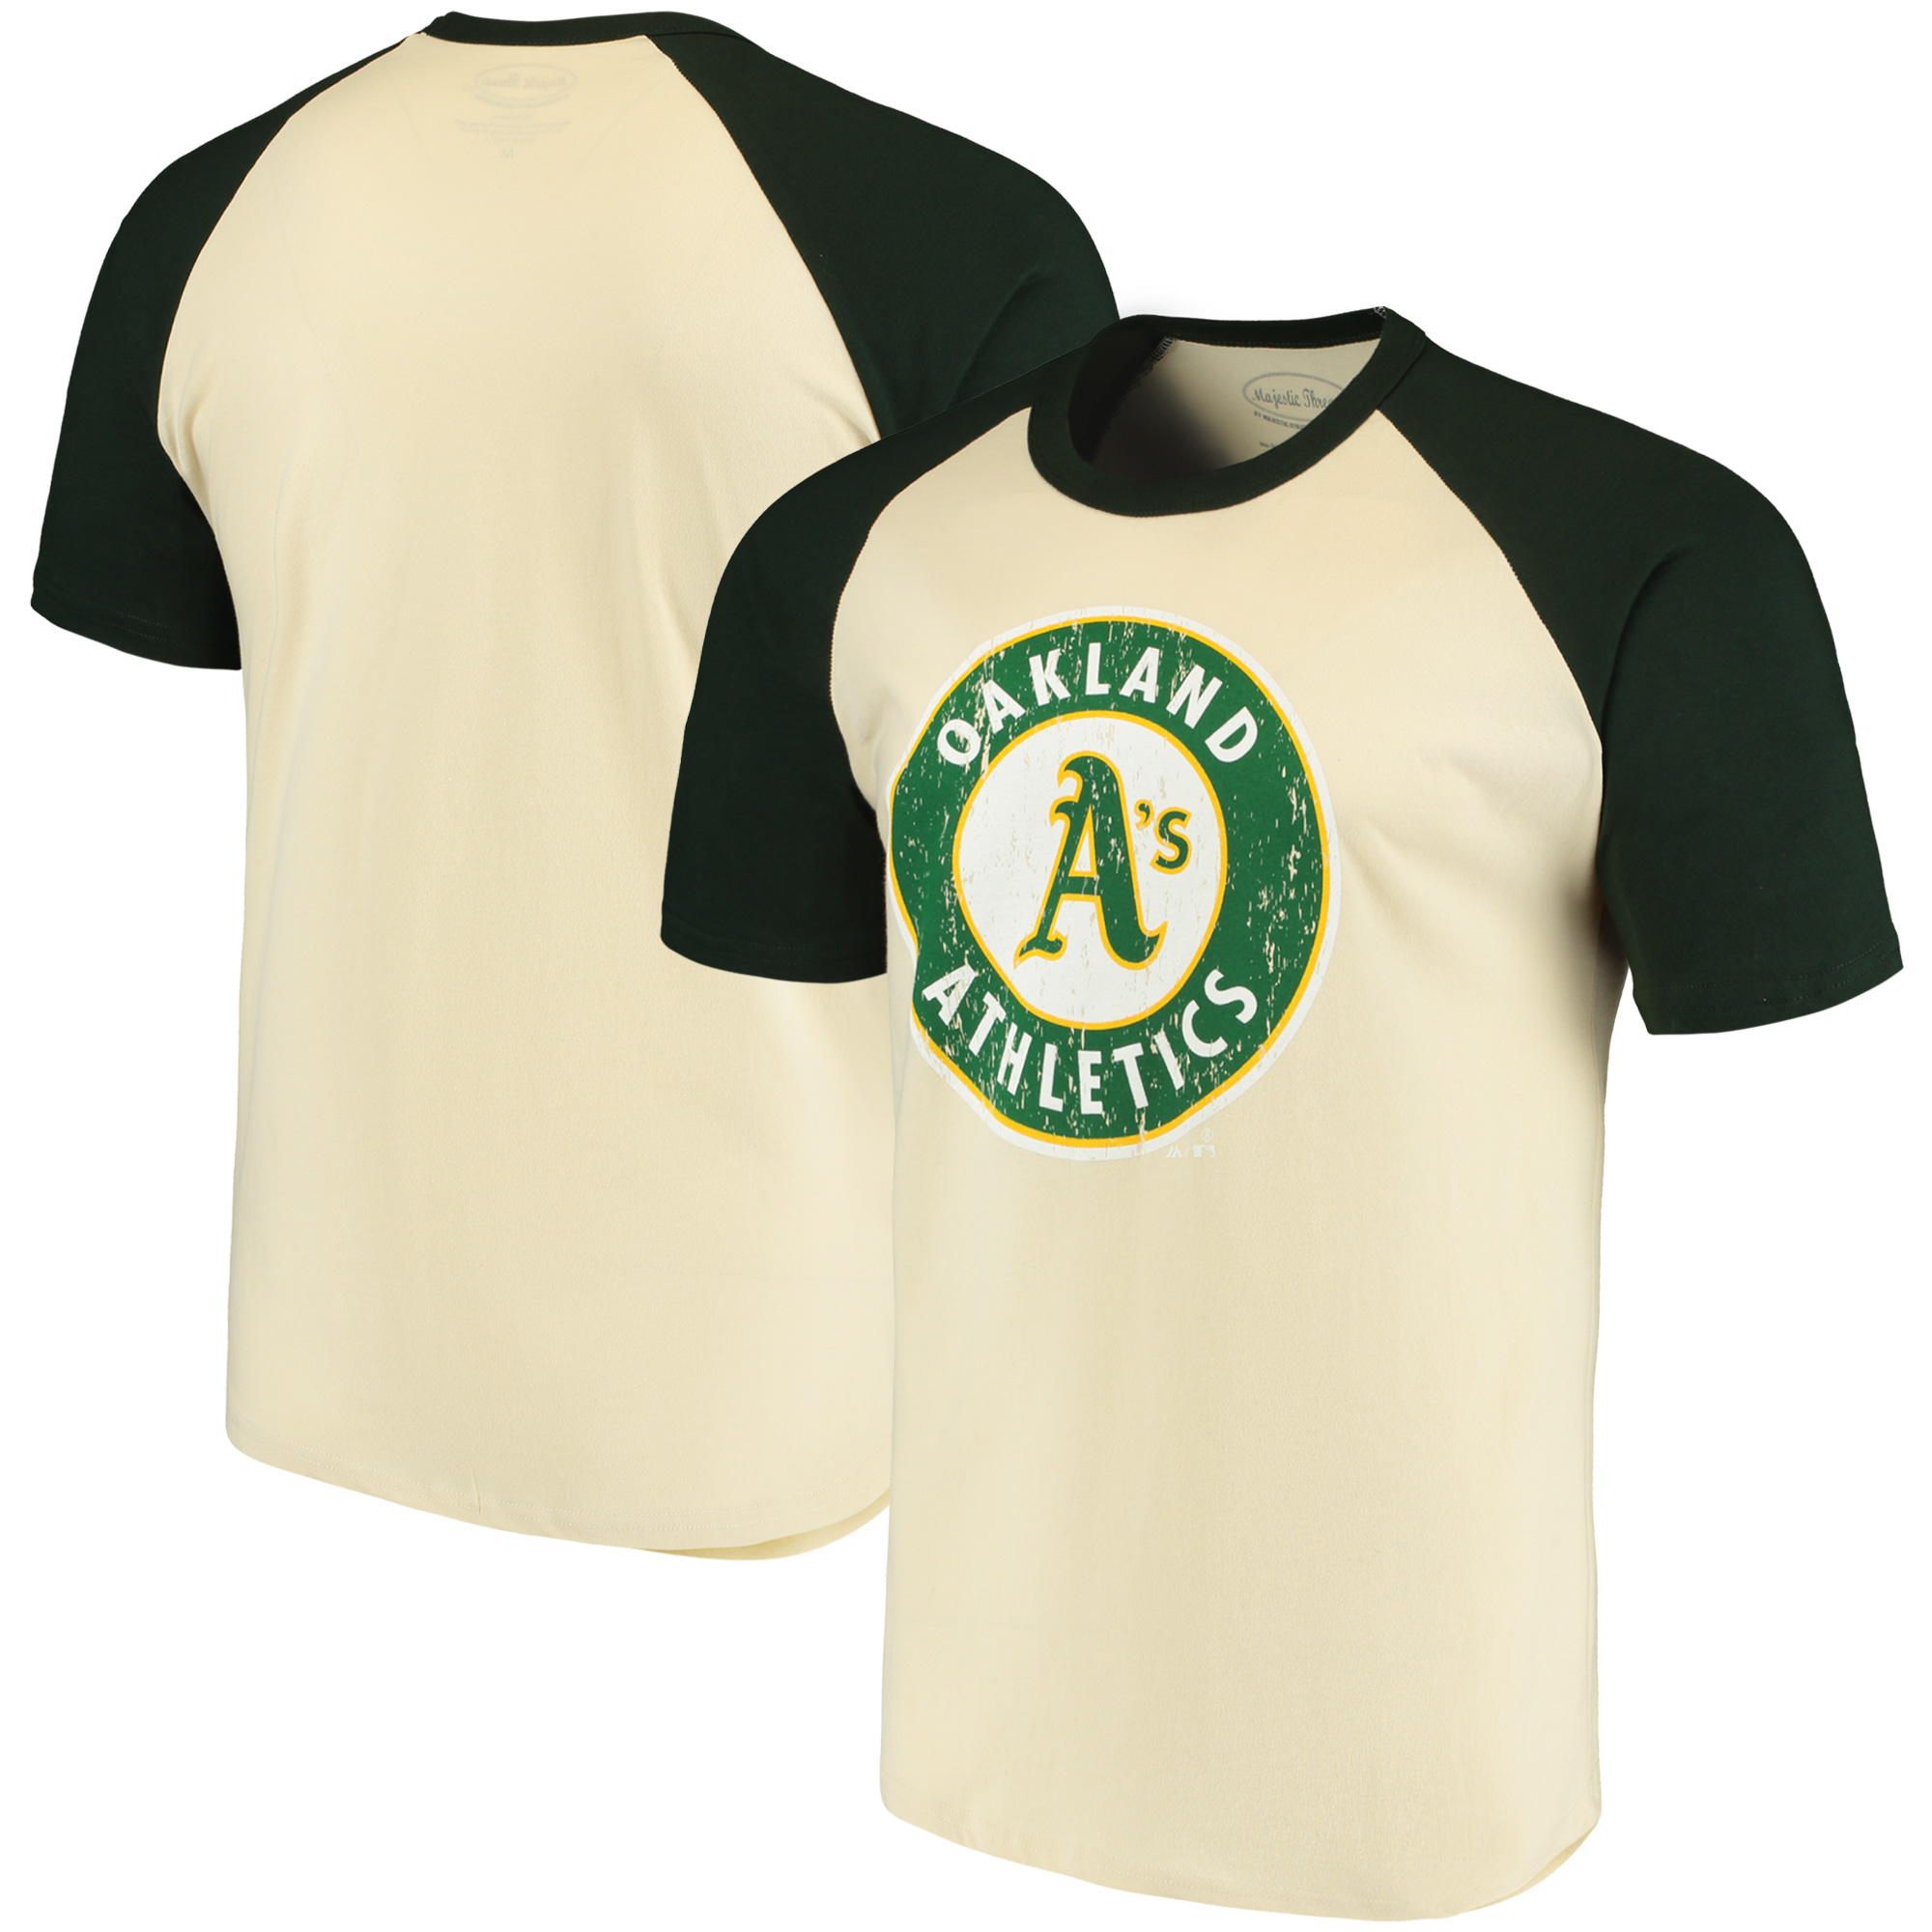 Oakland Athletics Majestic Threads Softhand Raglan T-Shirt - Cream/Green